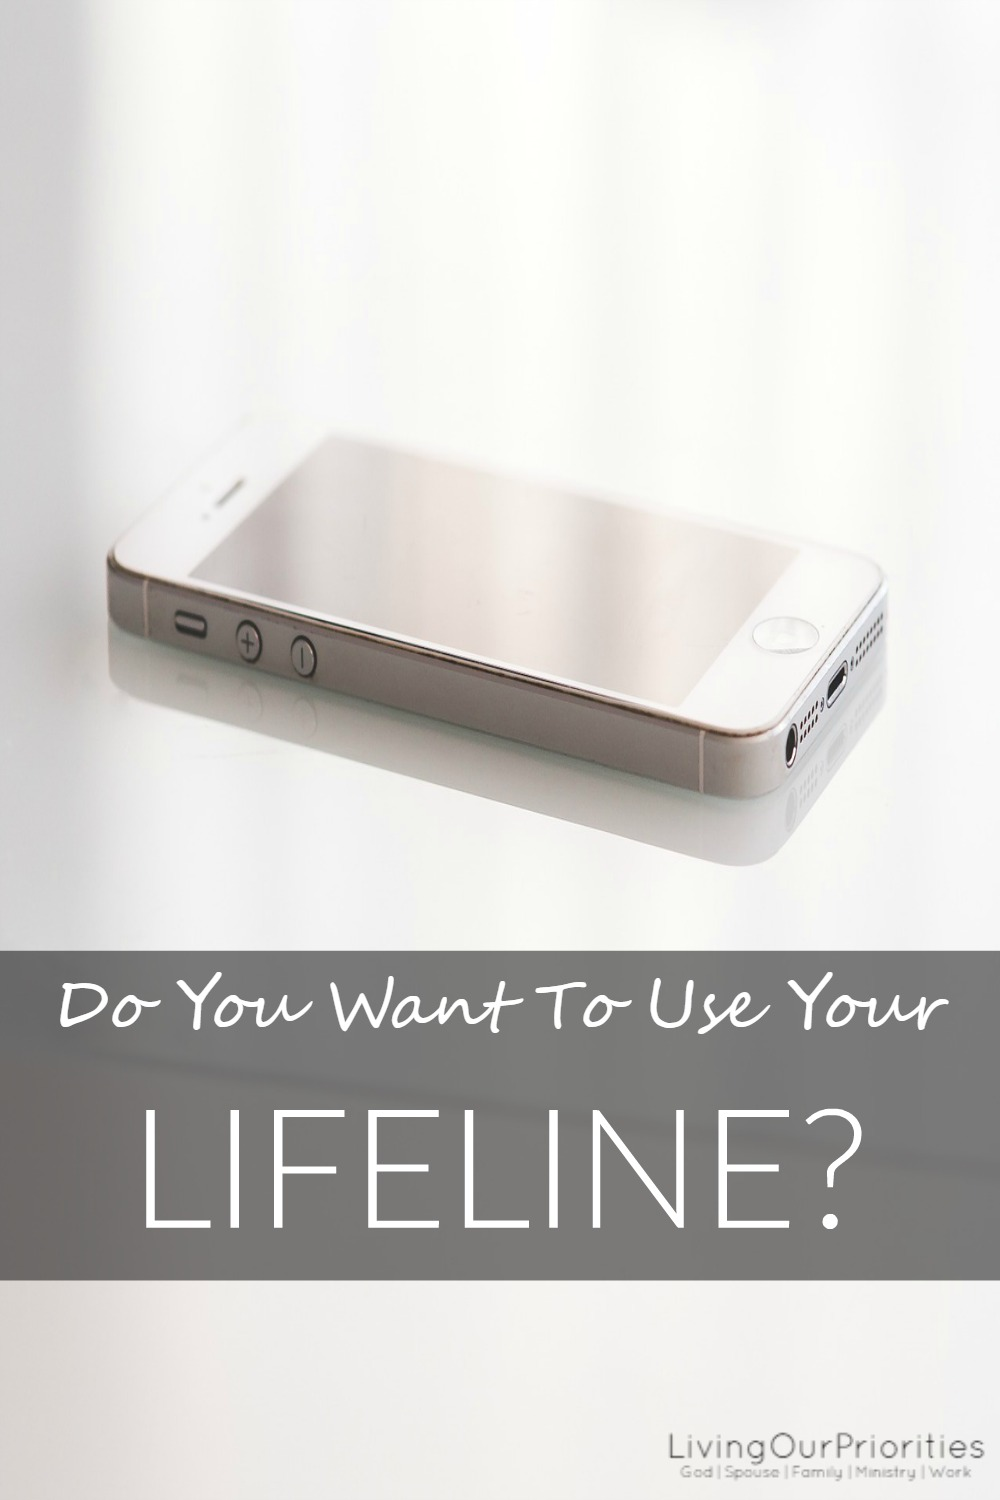 If you were asked to use your lifeline who would you call?